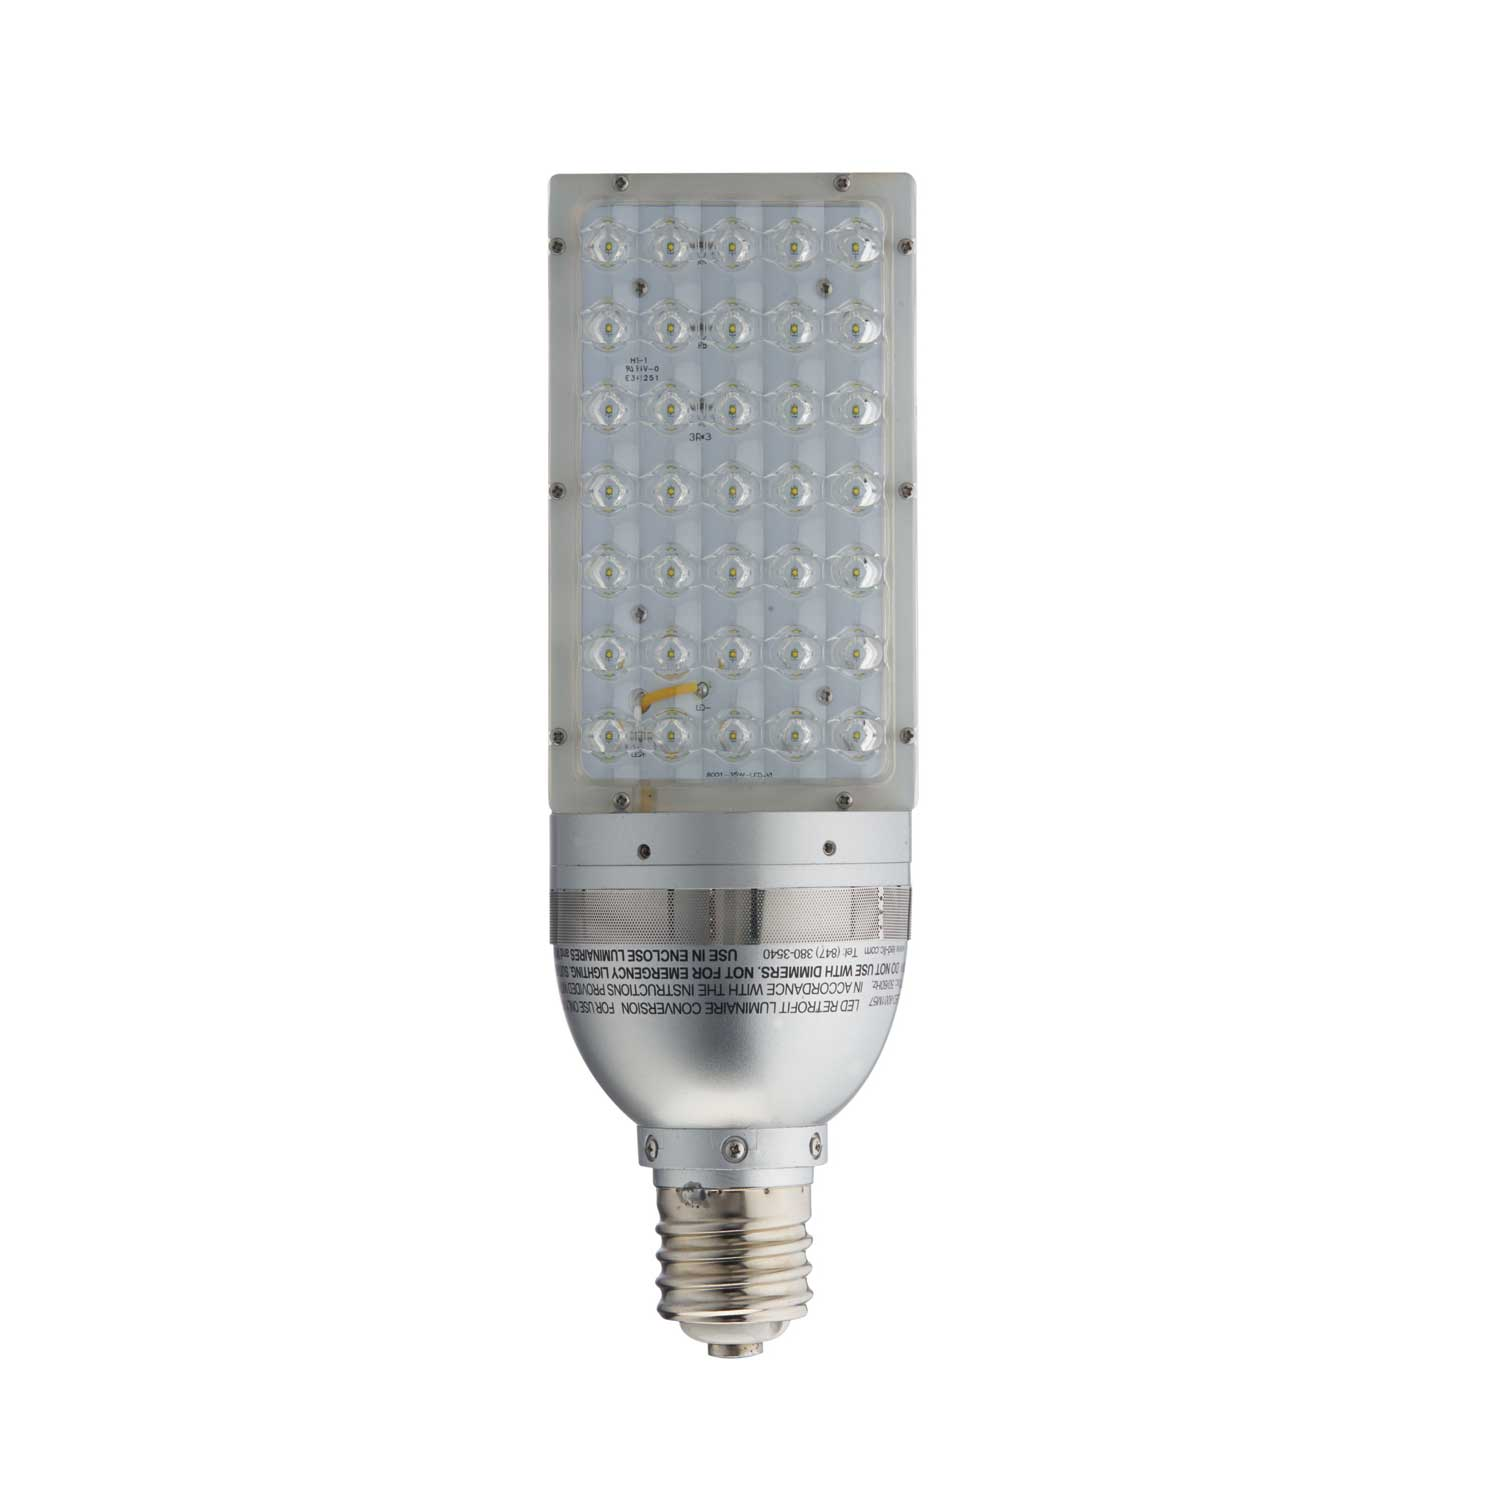 Led Lamps For Wall Packs : Light Efficient Design Led-8001M57 Bulb 35W Pole Top/Wall Pack Great Brands Outlet